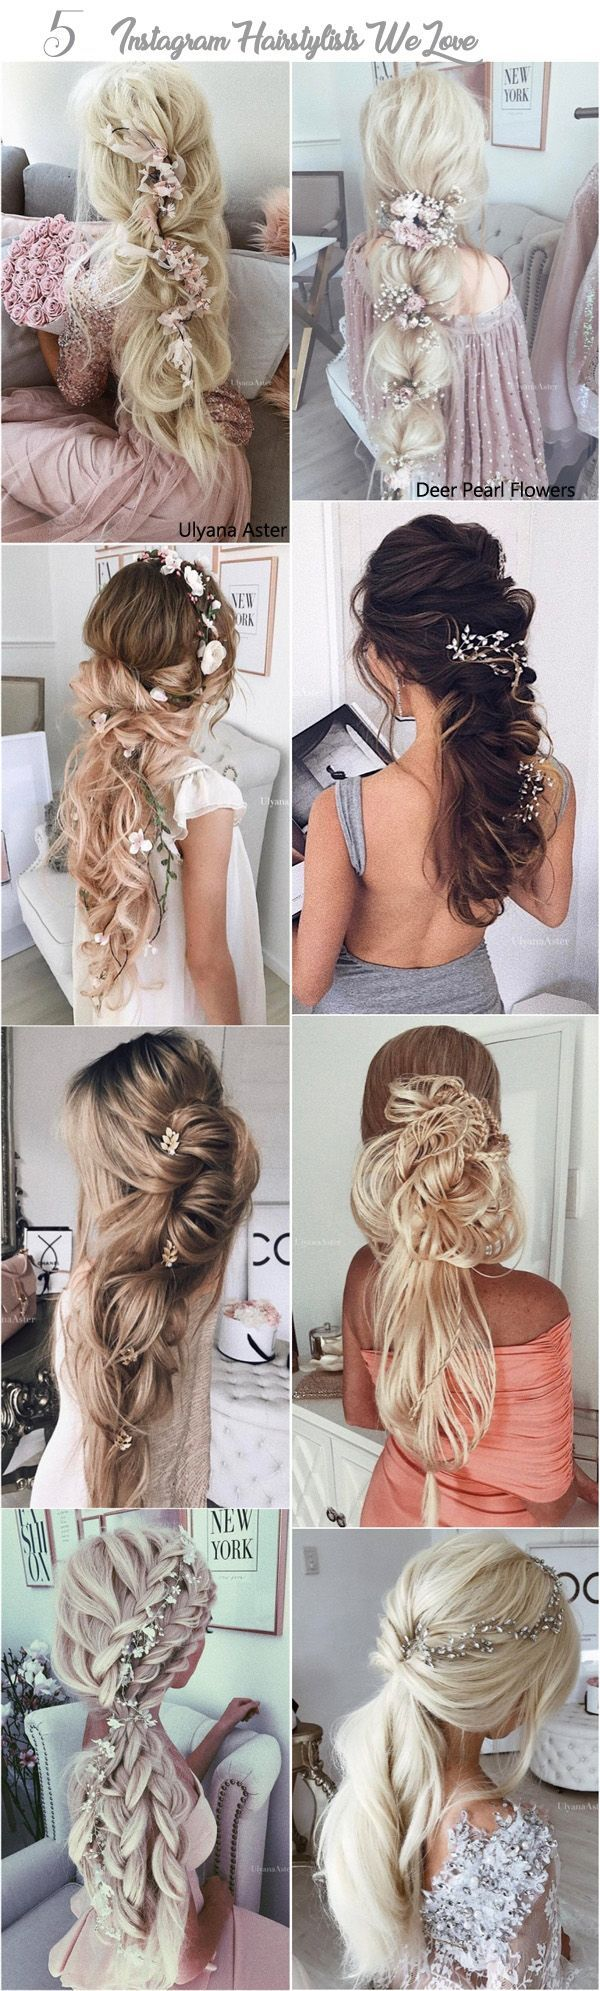 50 Long Wedding Hairstyles from 5 Best Instagram Hairstylists